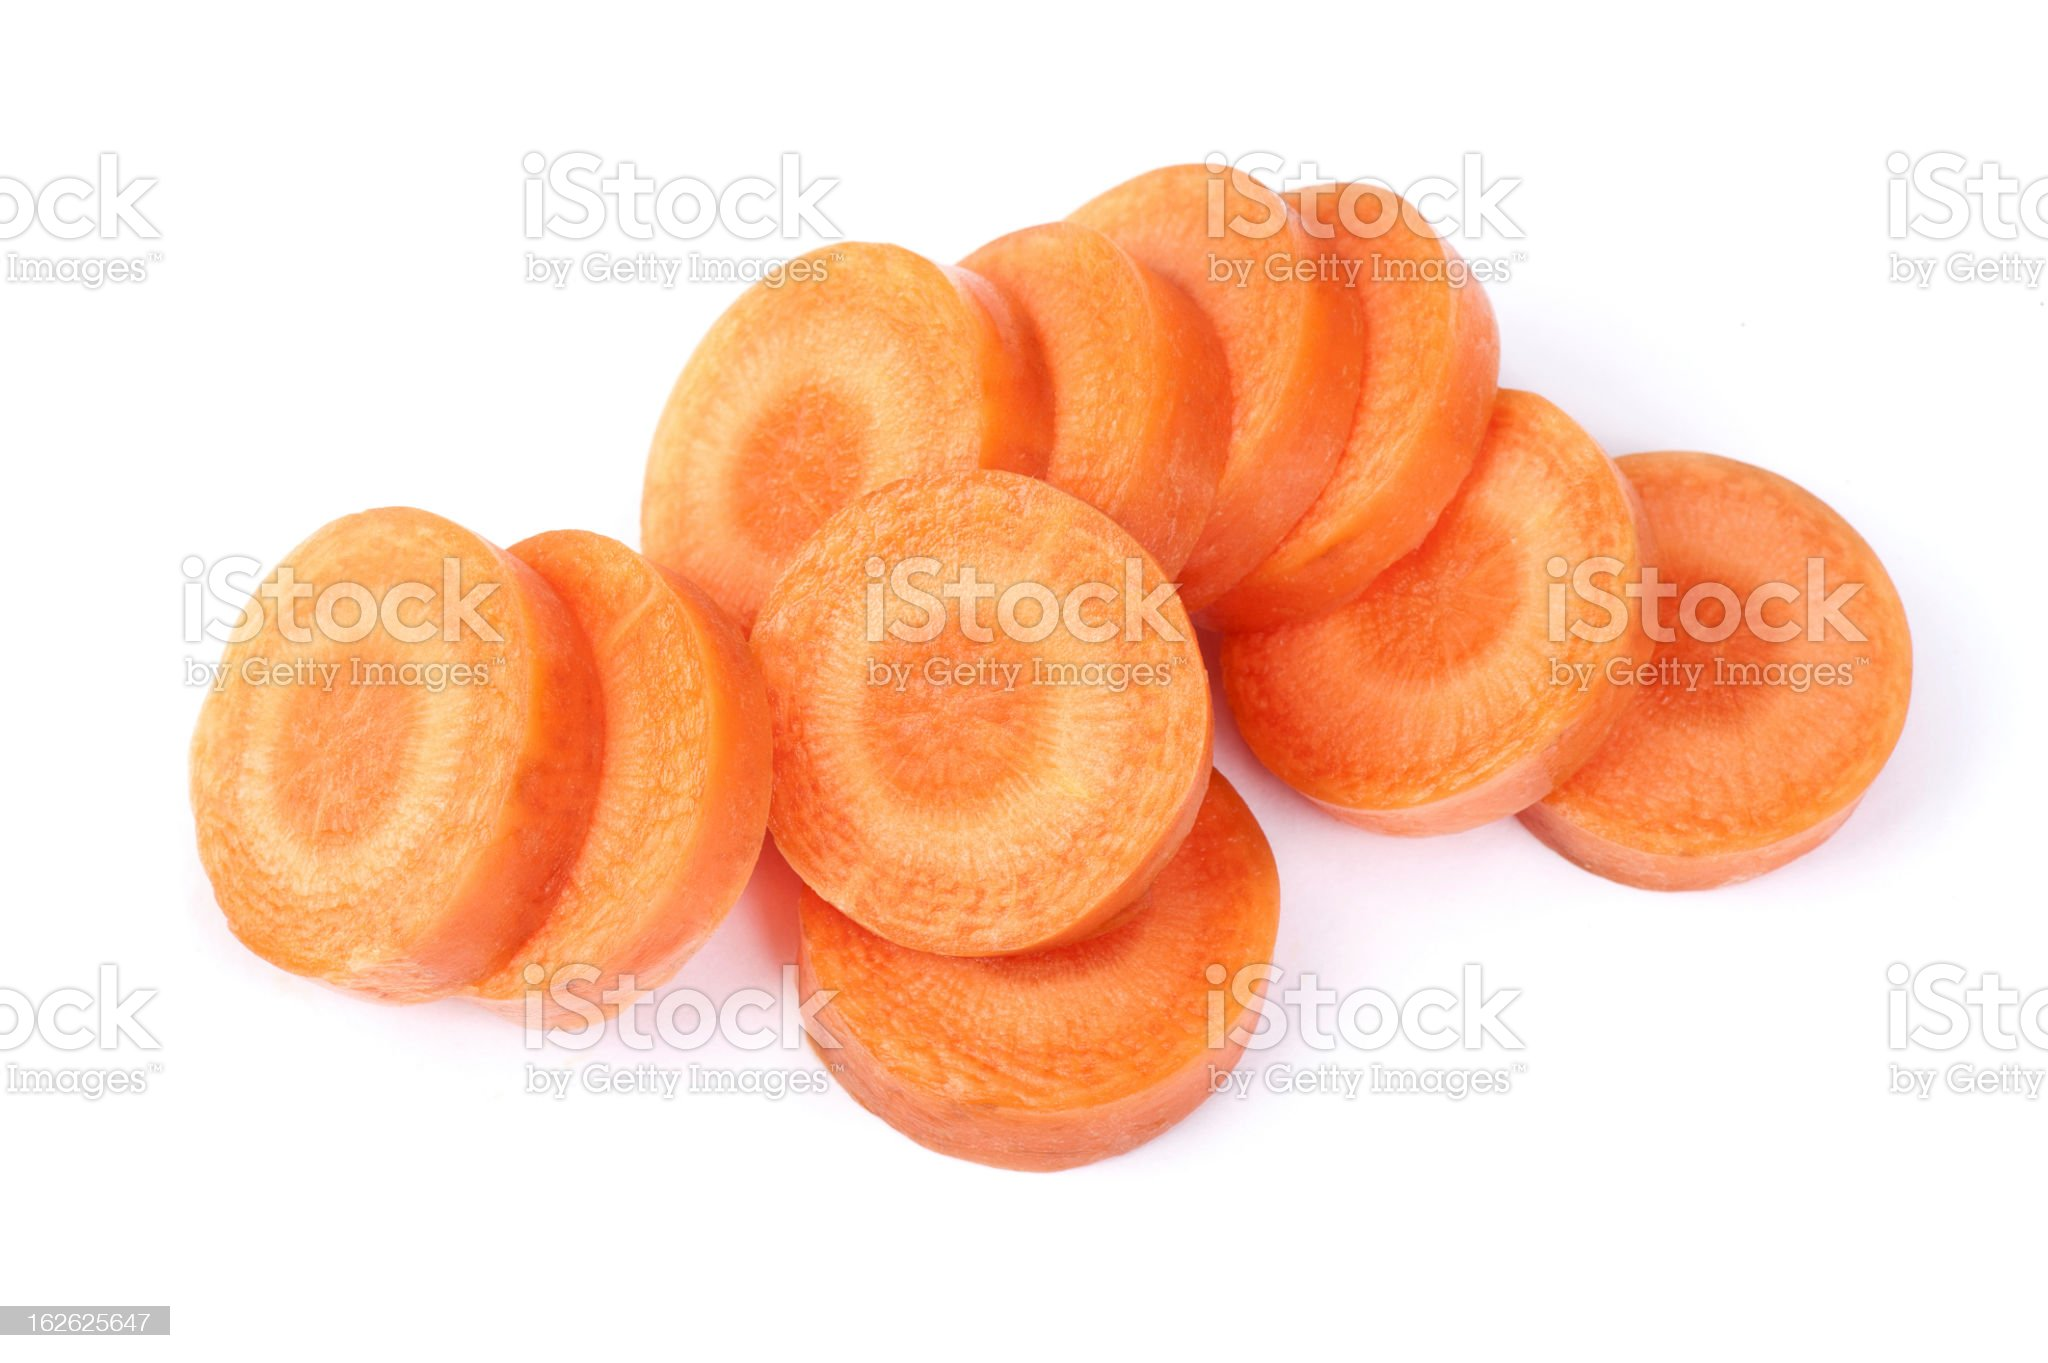 Slices of carrot on a white background royalty-free stock photo